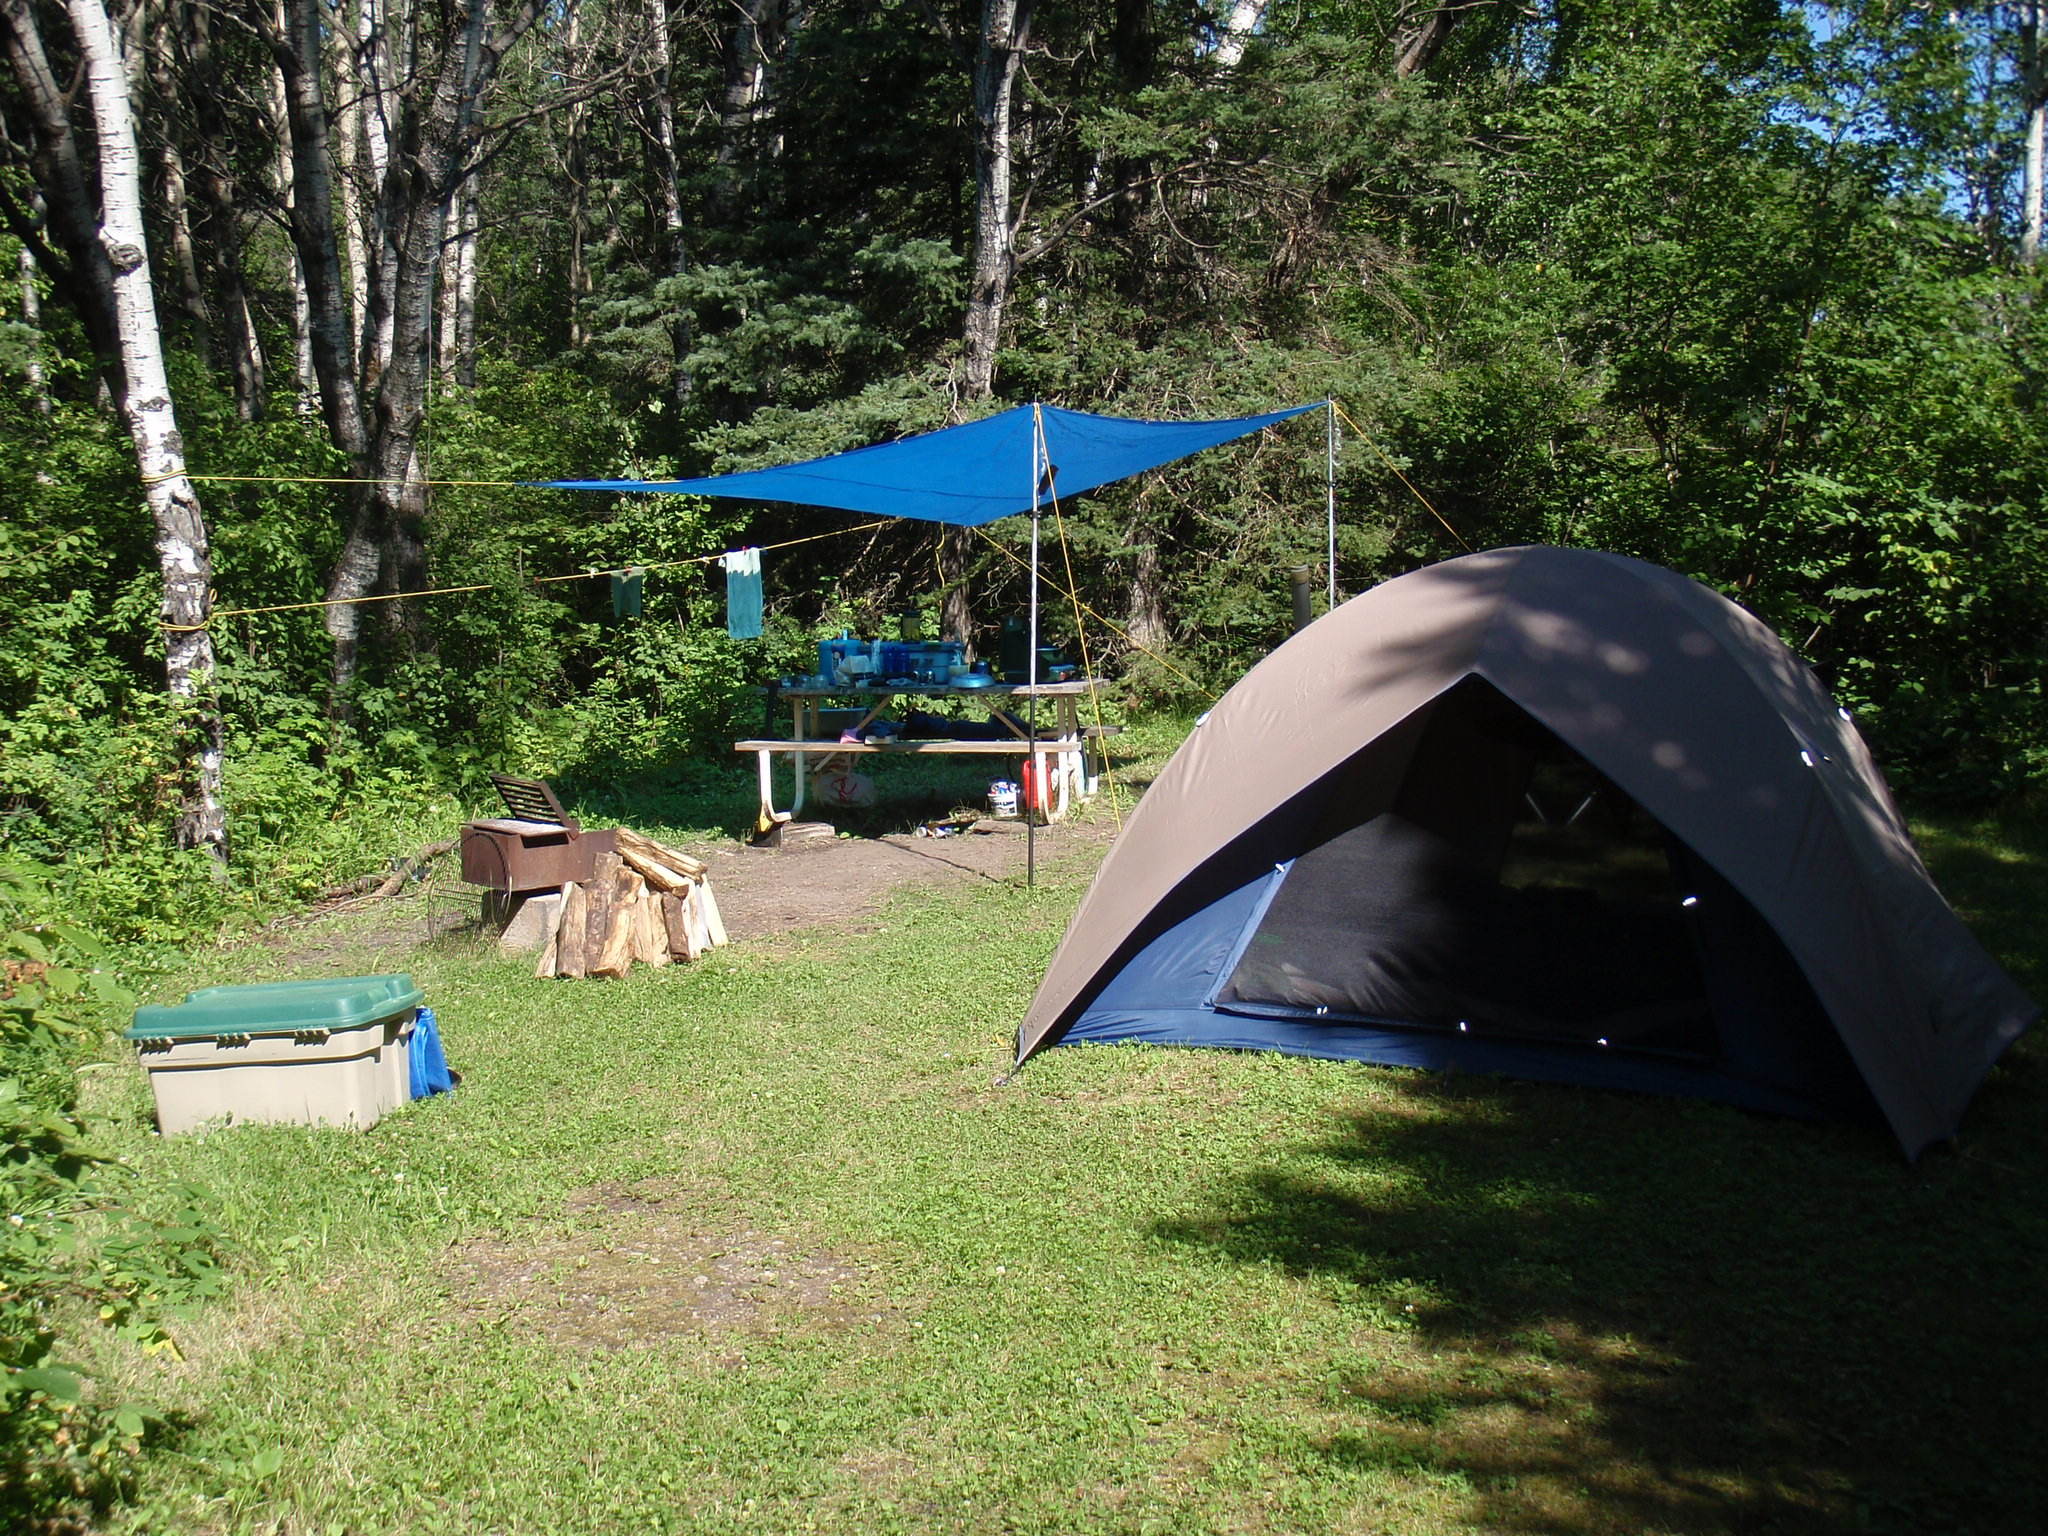 Nearly 600 campsites added to BC Parks and recreation sites